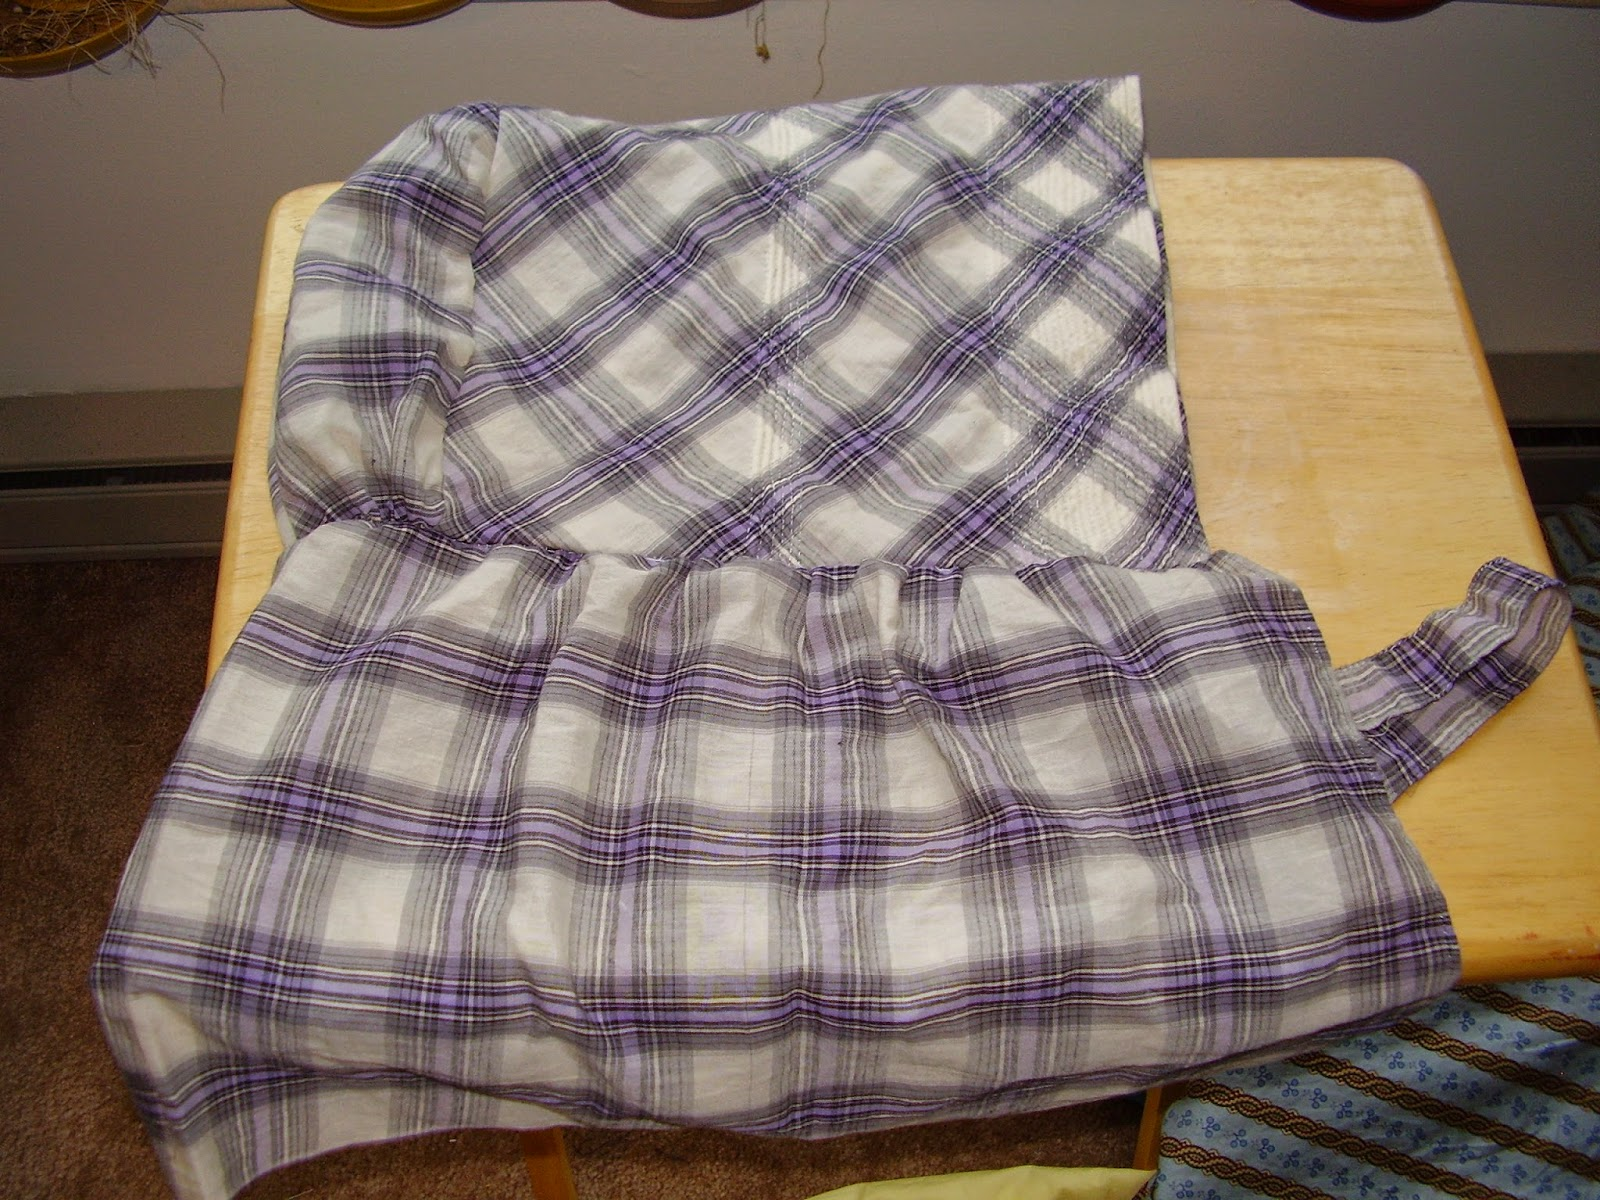 Completed plaid sunbonnet, for 19th century living history.